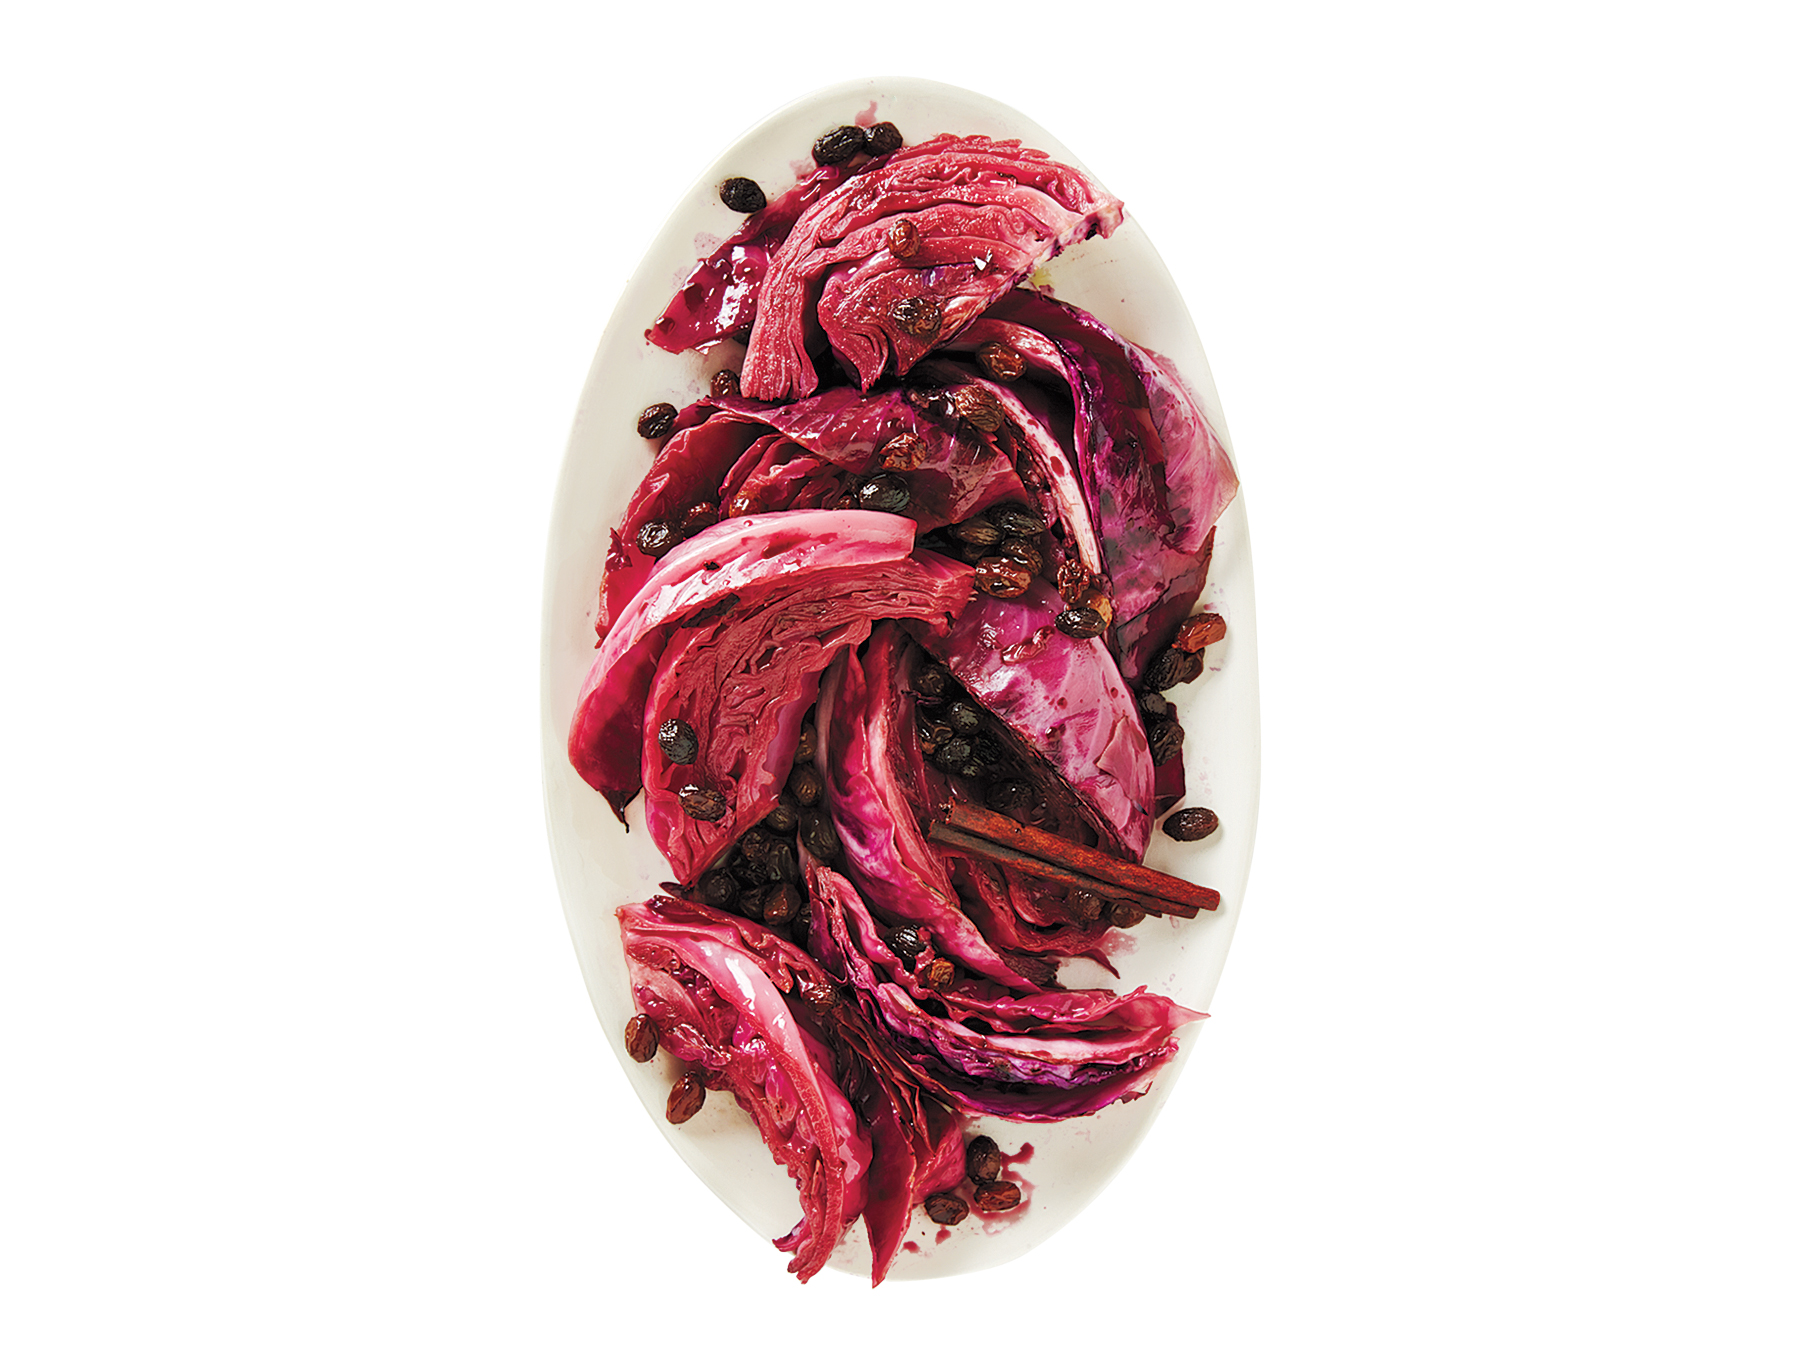 Braised Red Cabbage Wedges